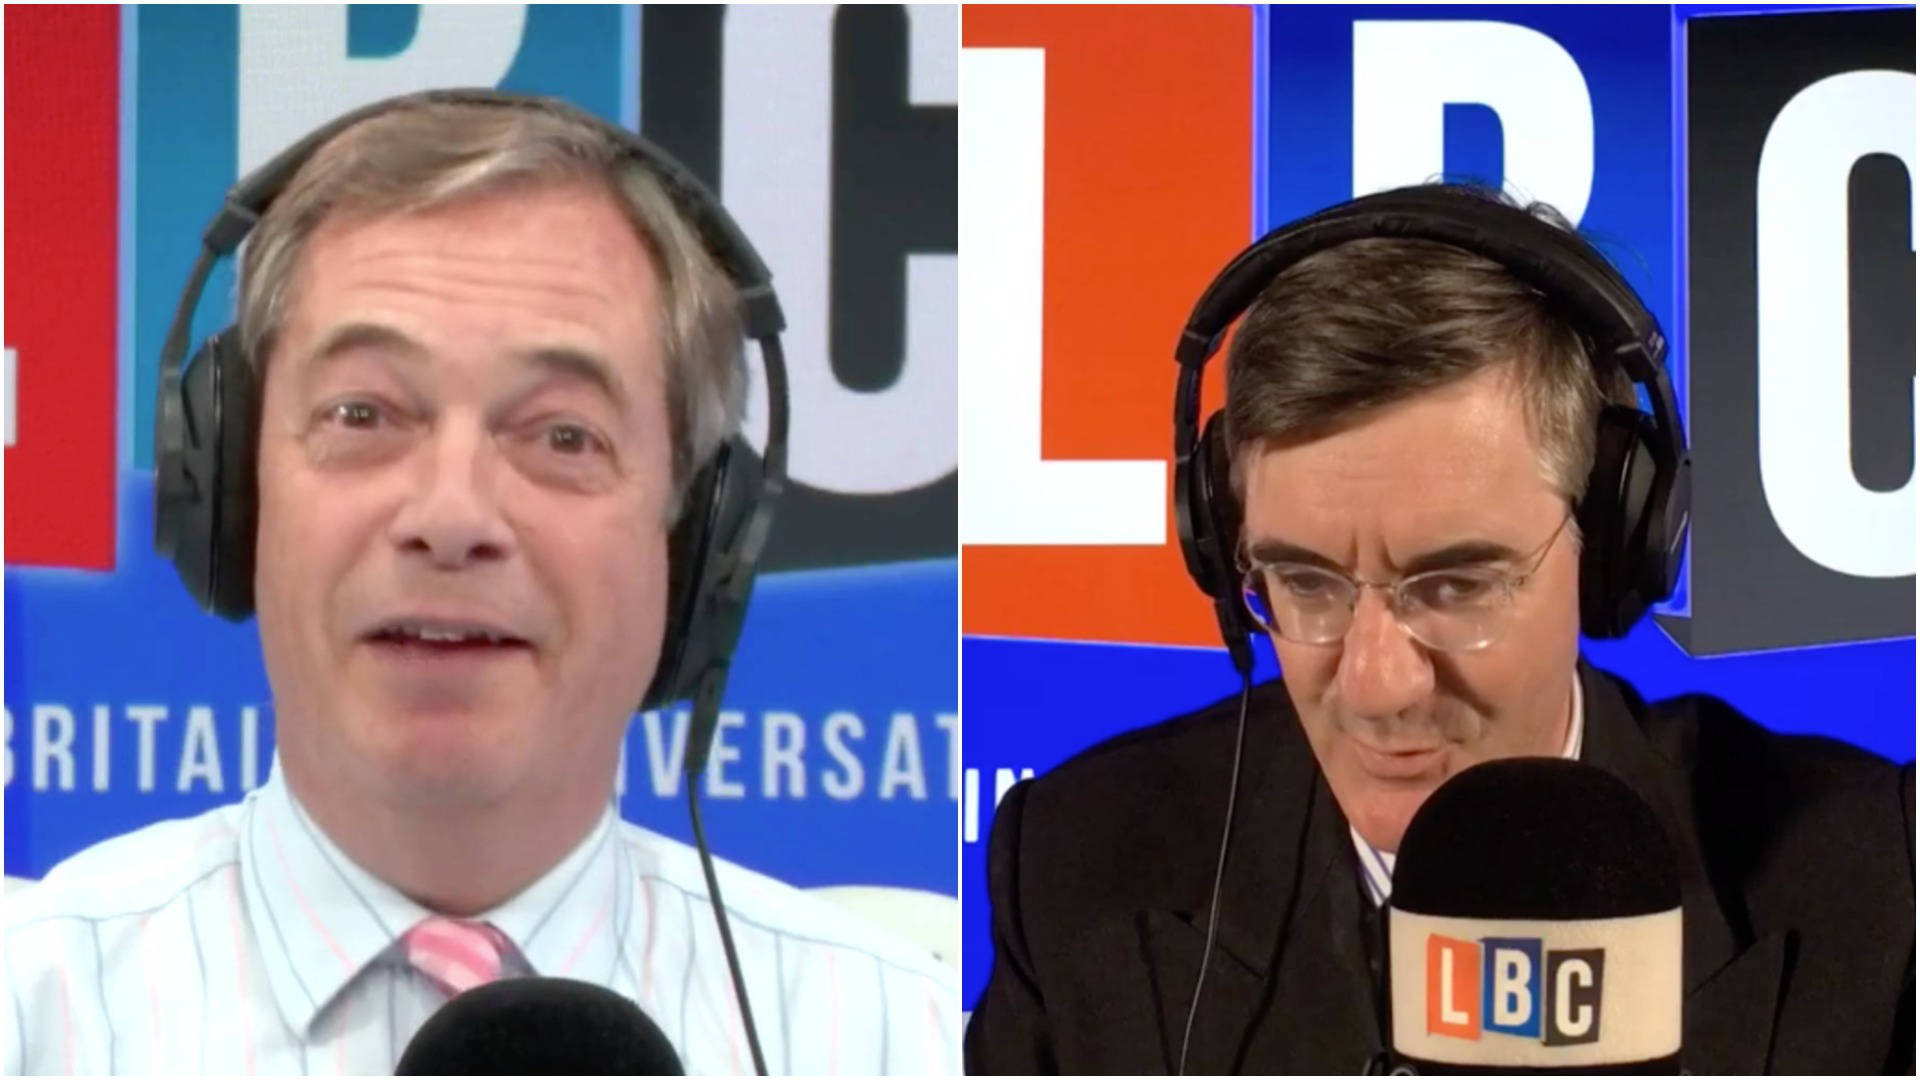 Nigel Farage Calls Jacob Rees-Mogg To Demand A Seat At The Negotiating Table